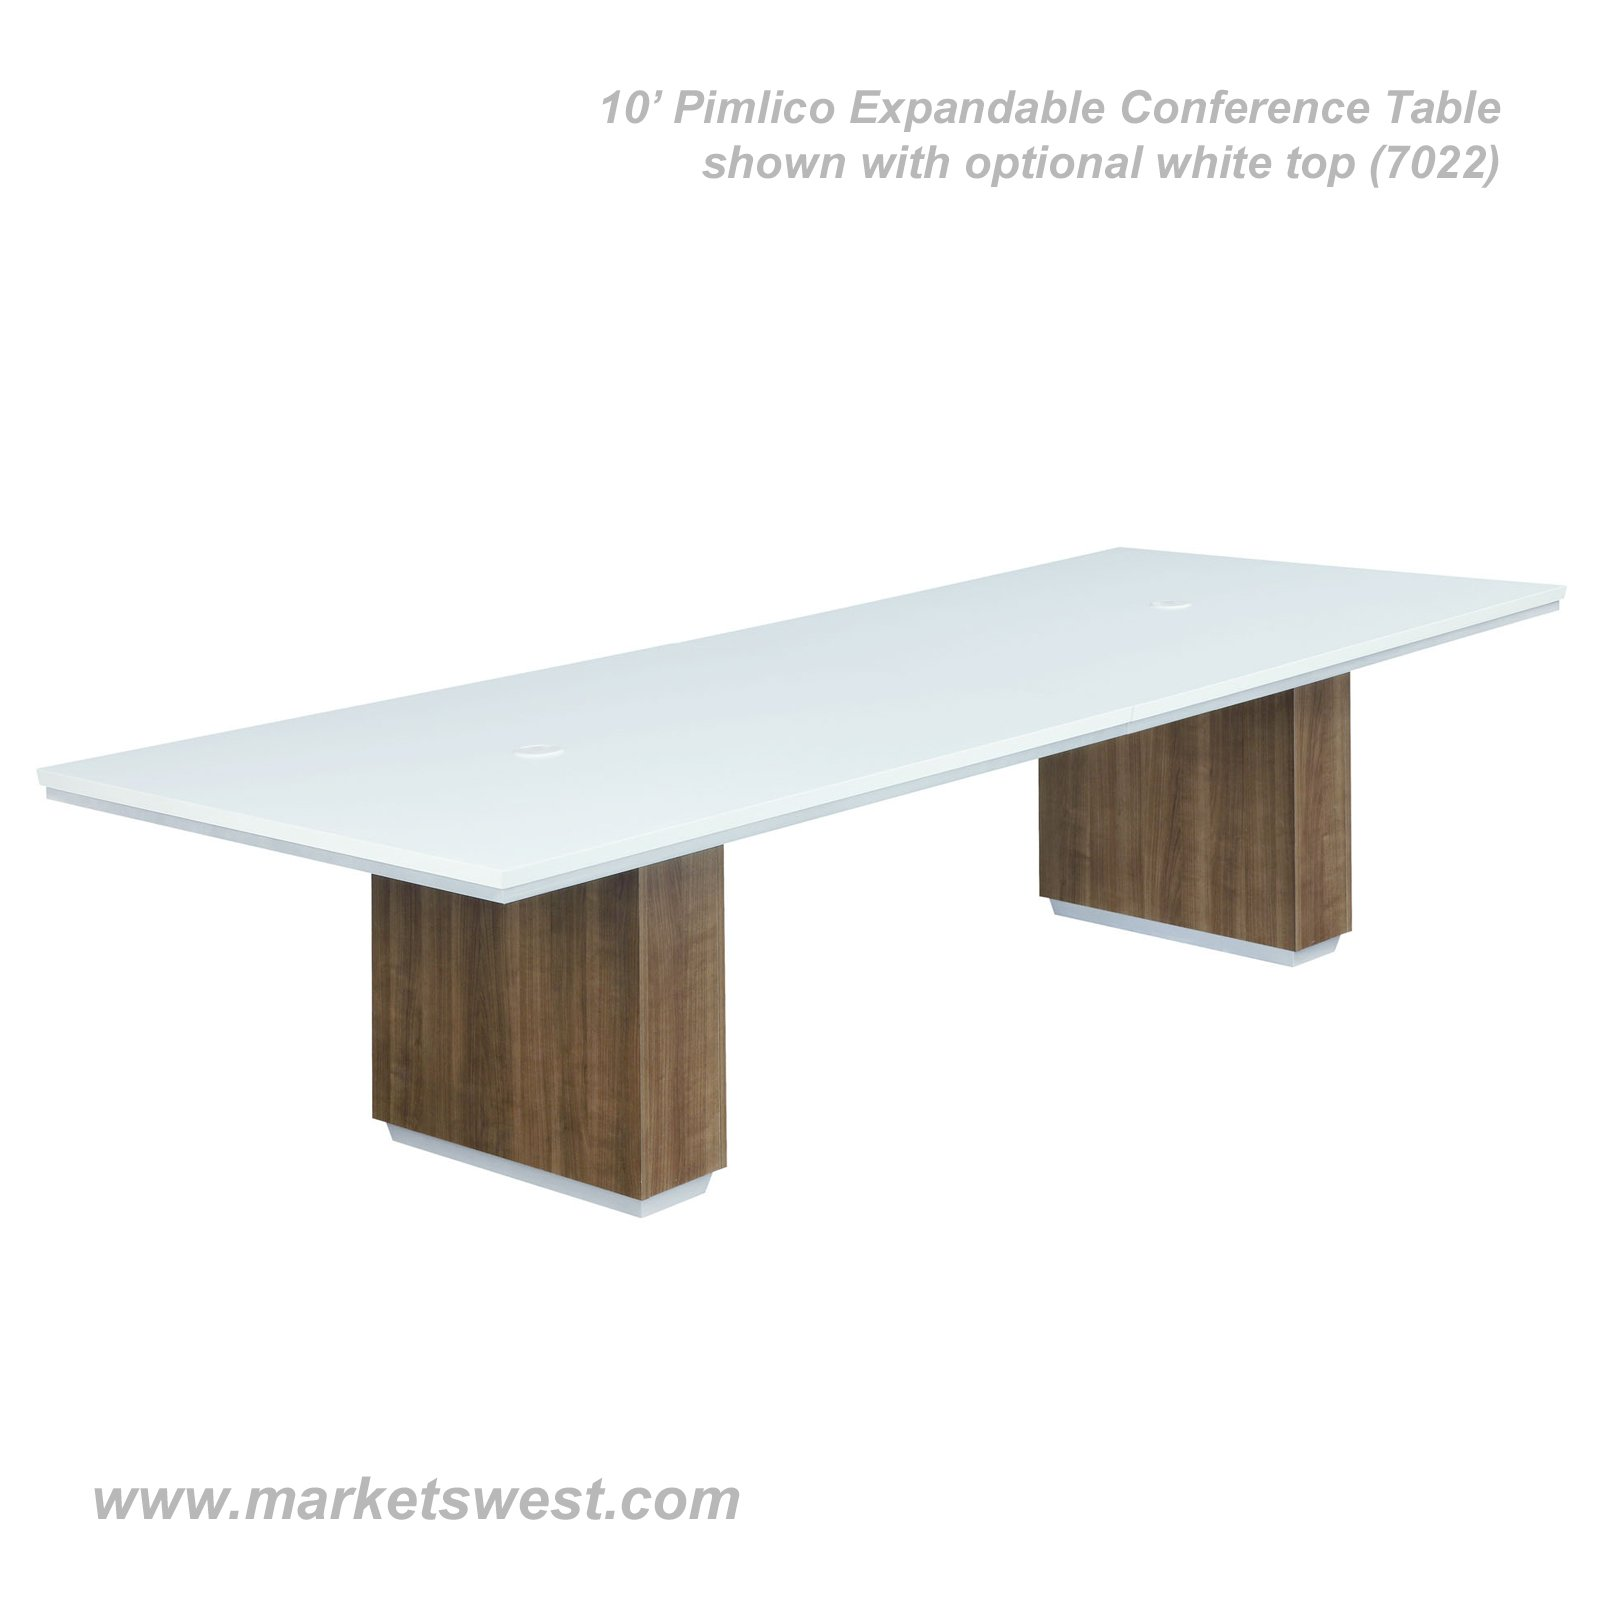 Pimlico Walnut Laminate Rectangular EXPANDABLE Conference Table - 120 conference table